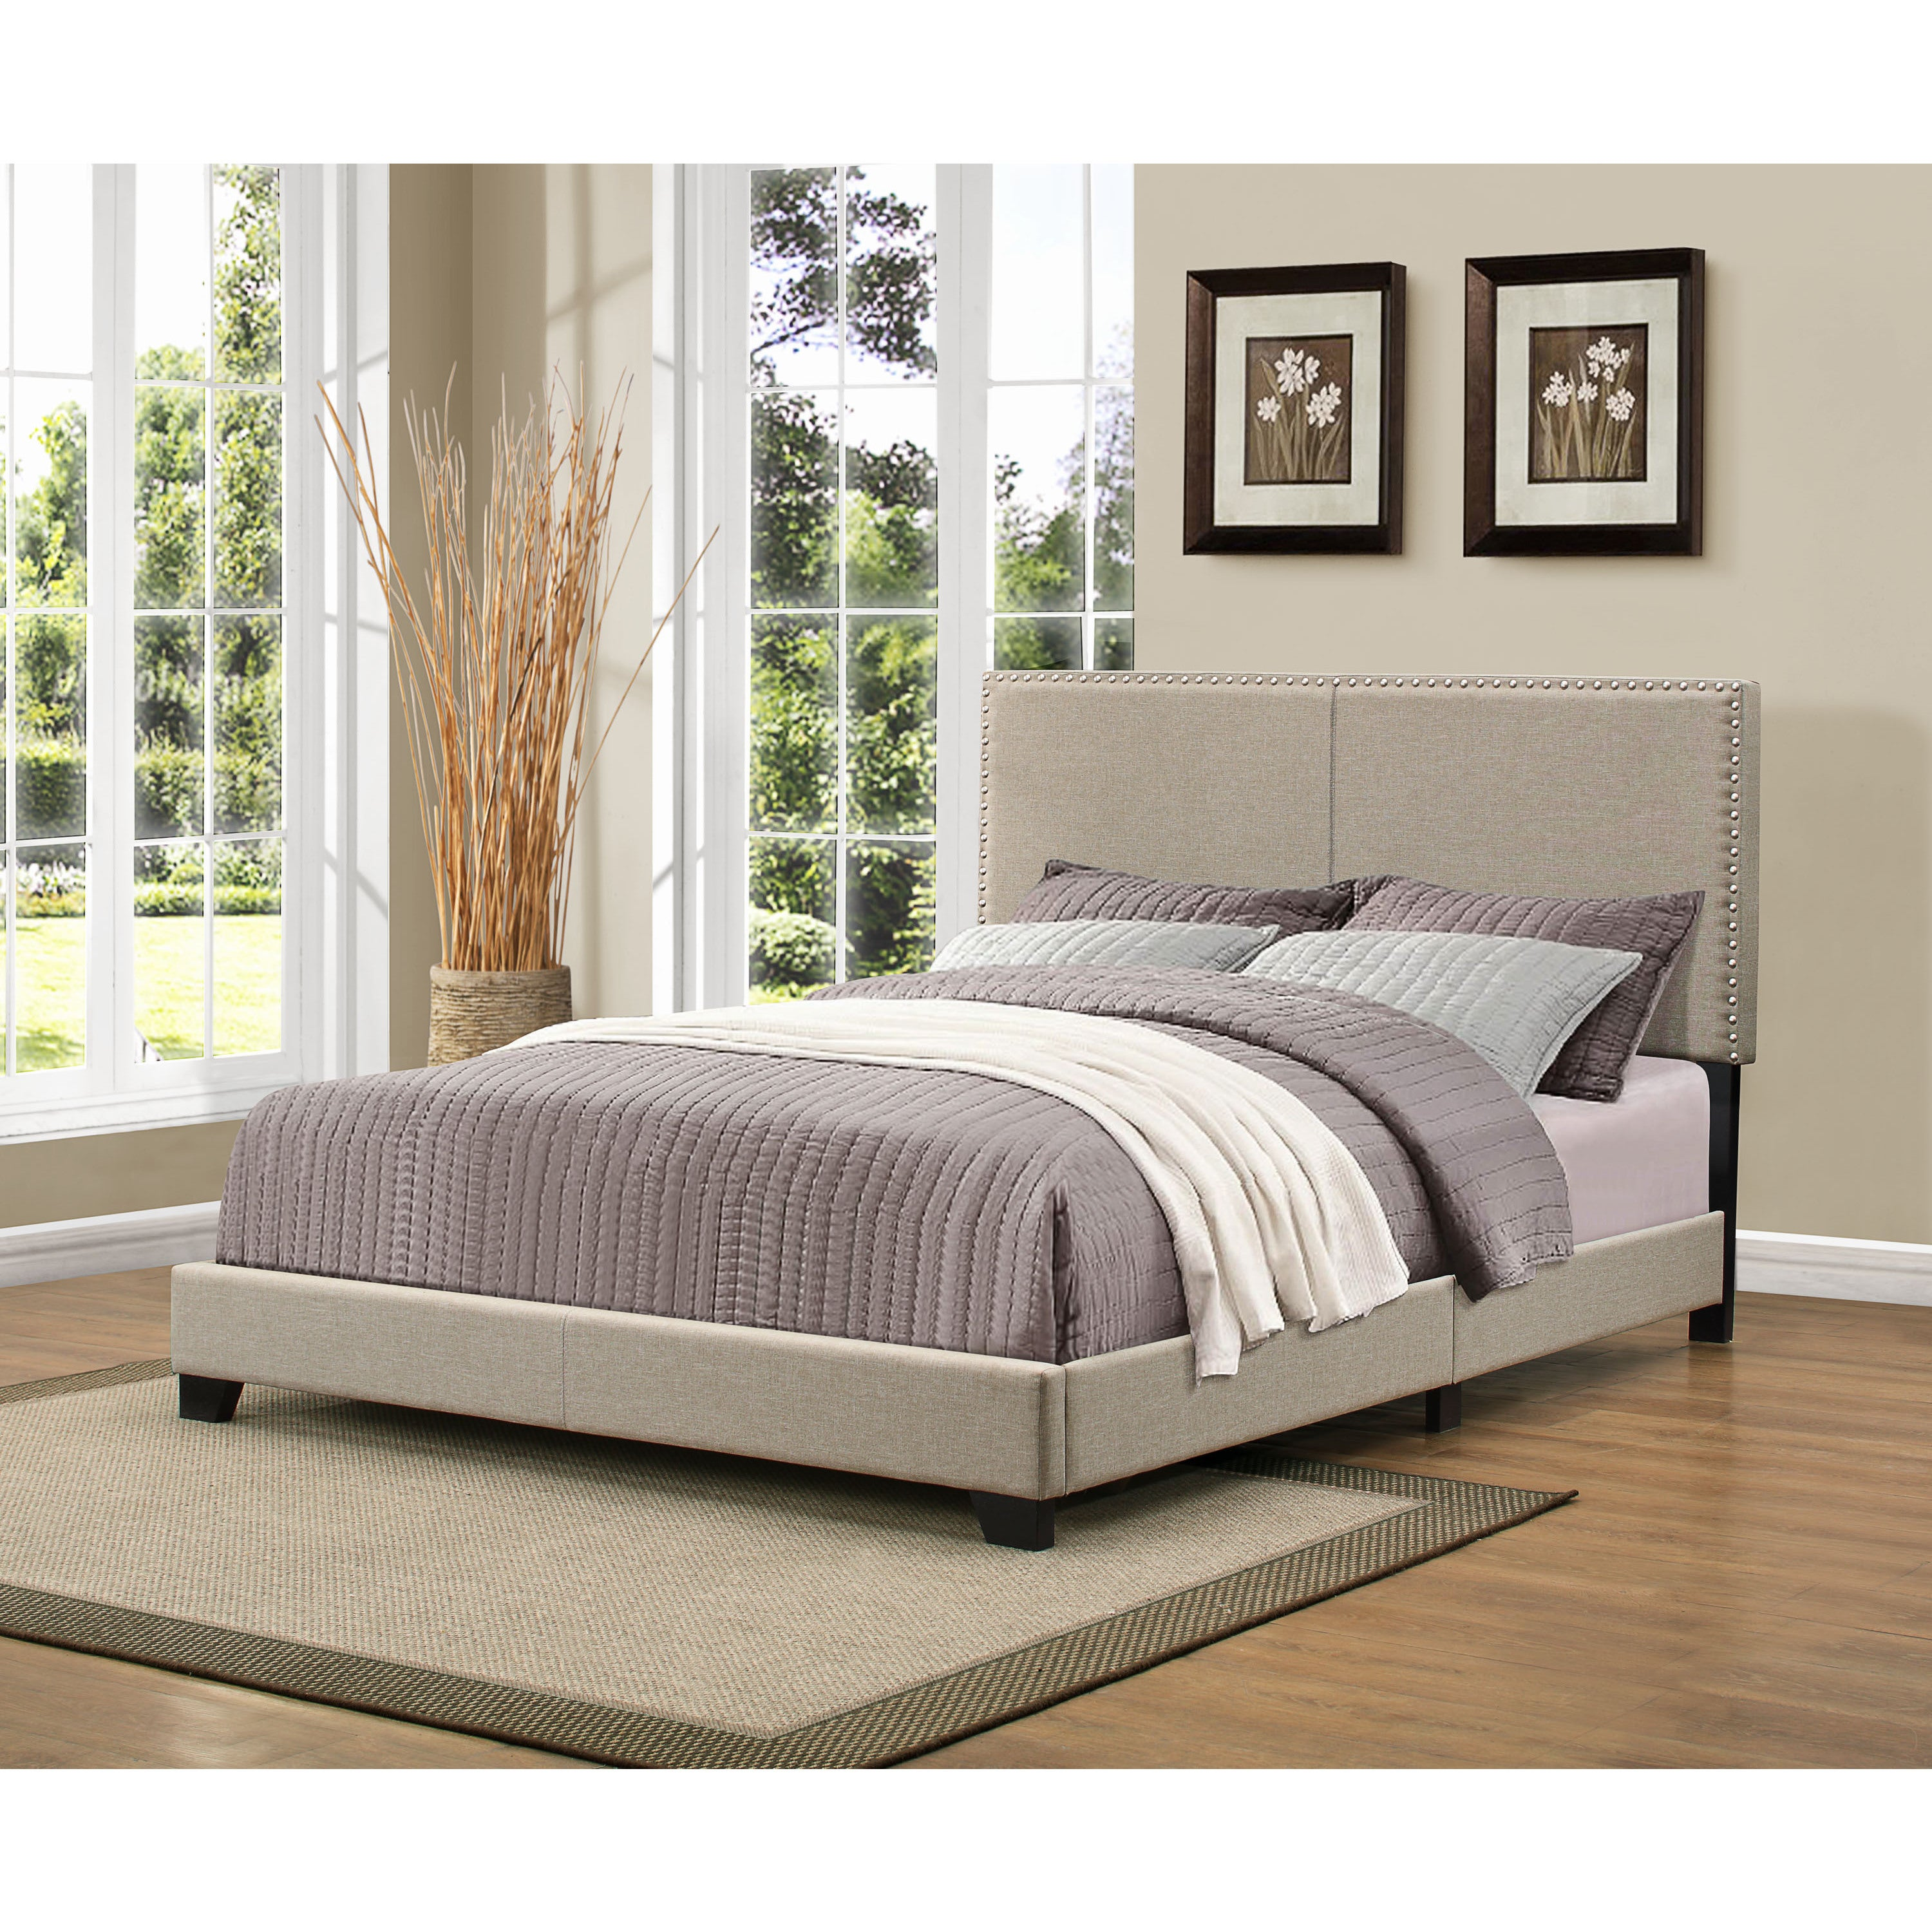 queen products traditional pc belfield beds upholstered silver bed bedrooms